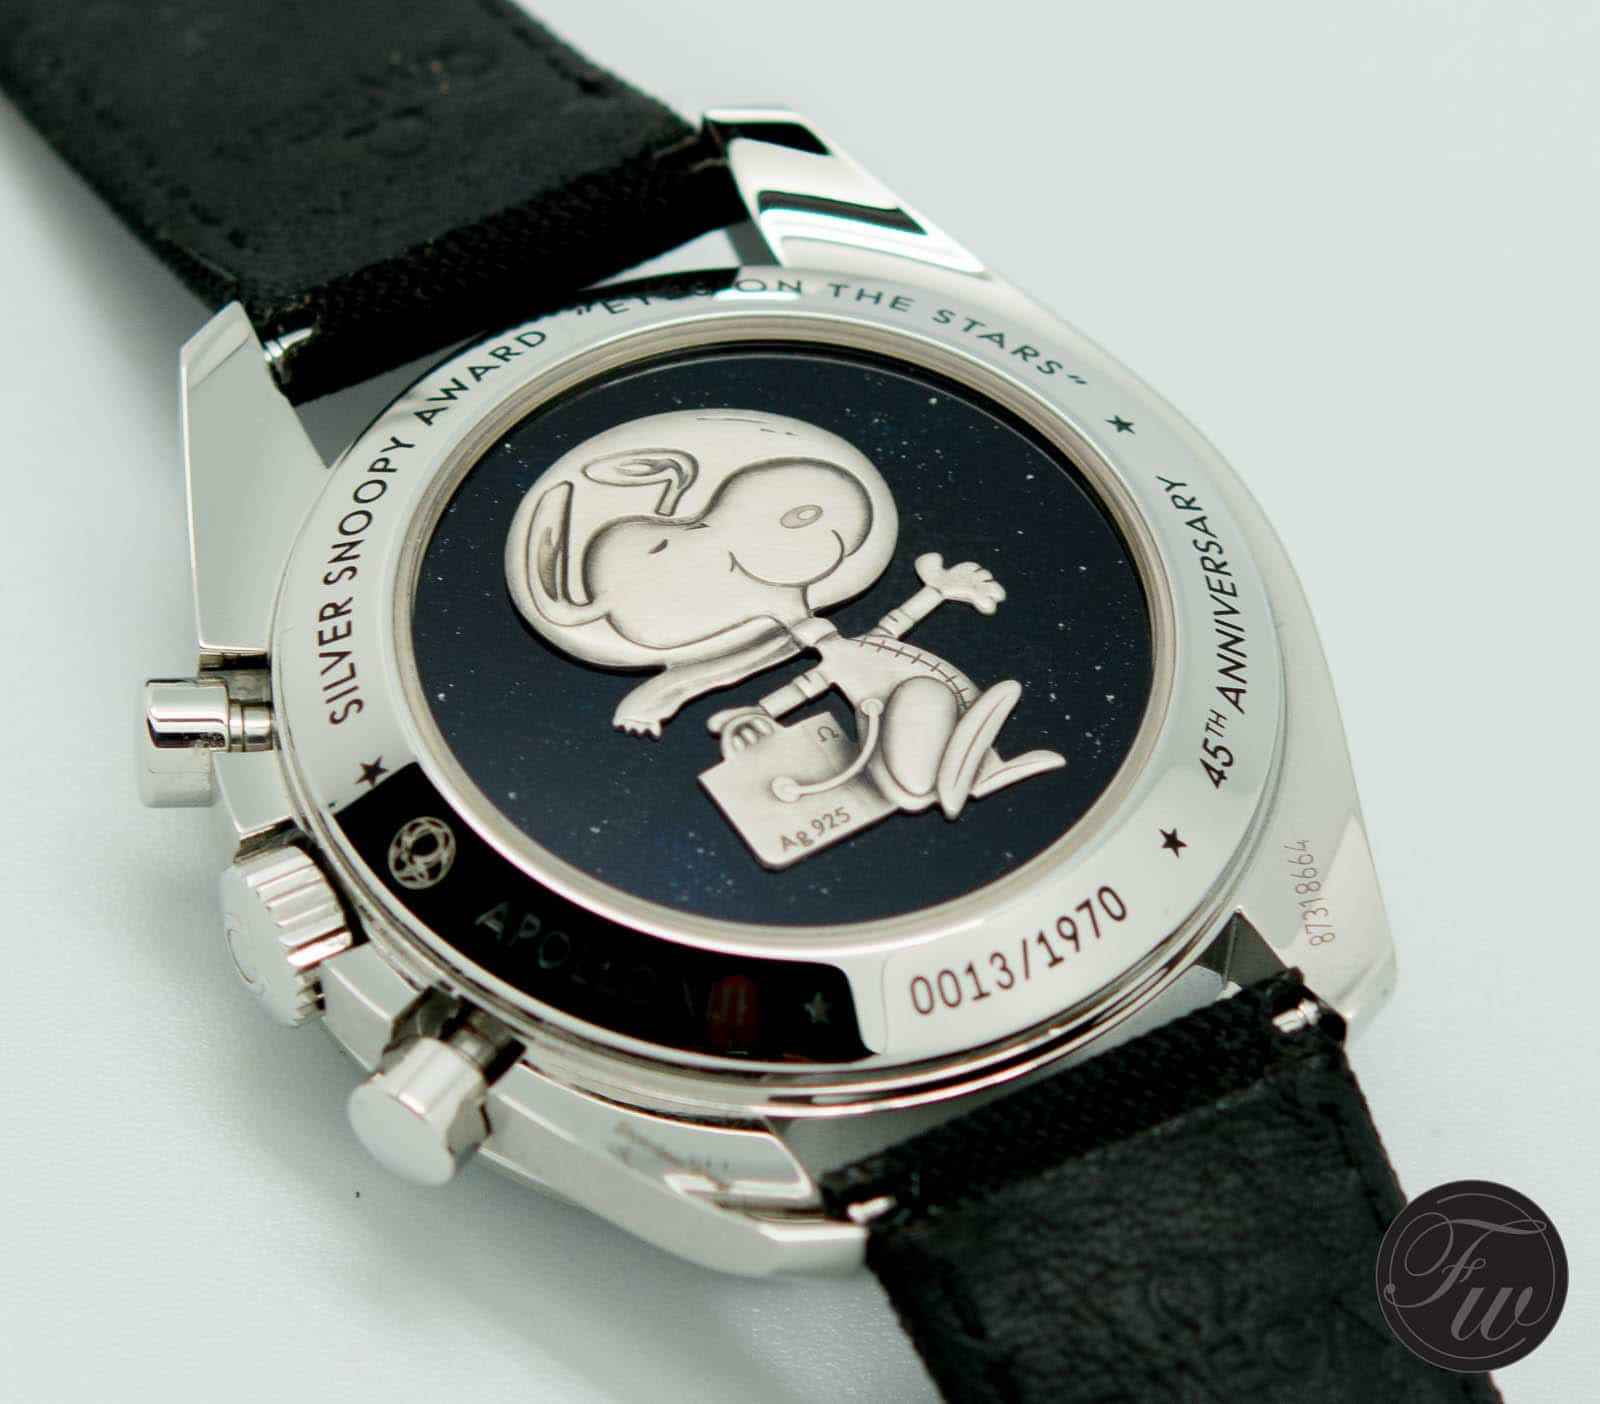 The Silver Snoopy Award Speedmaster